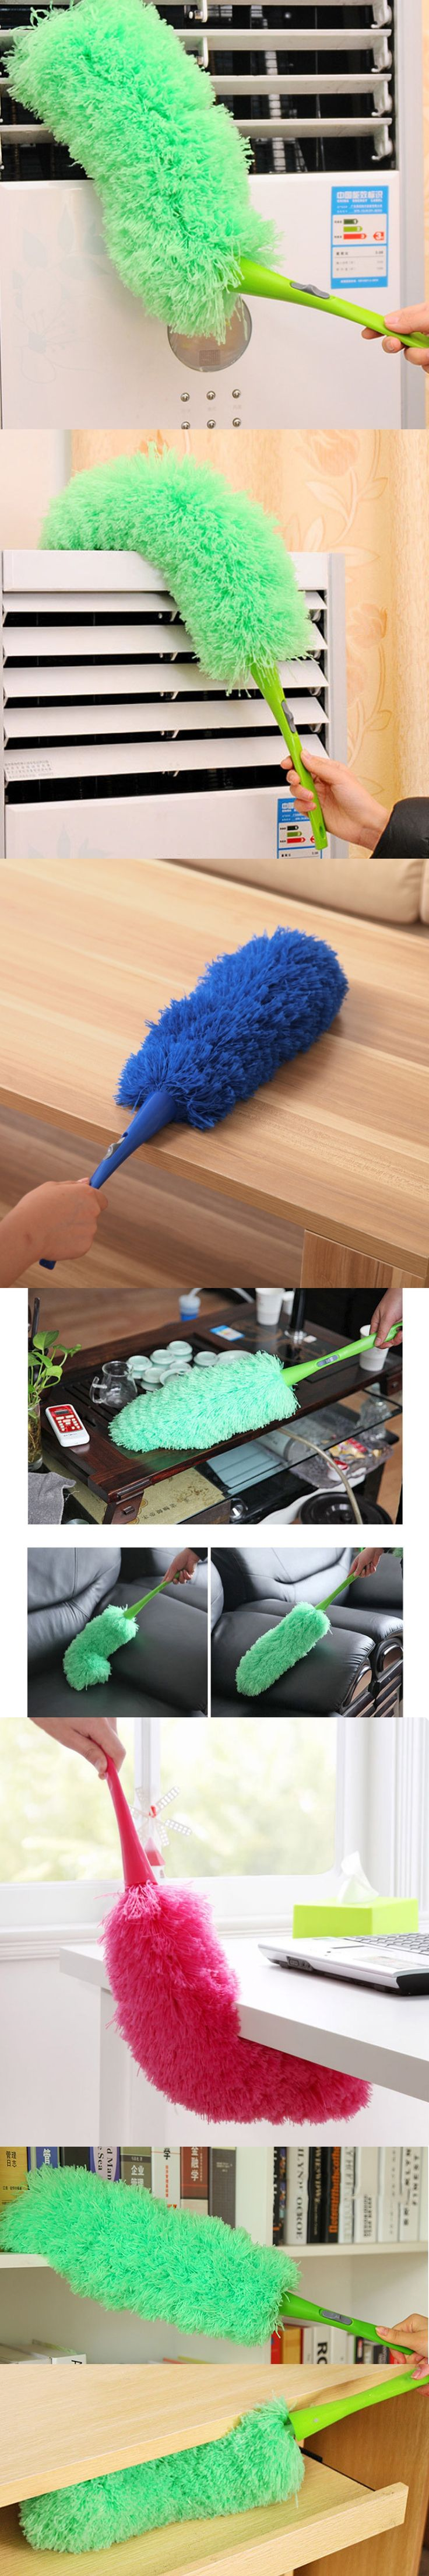 Pop Soft Microfiber Cleaning Duster Dust Cleaner Handle Feather Static Anti Magic Household Cleaning Tools